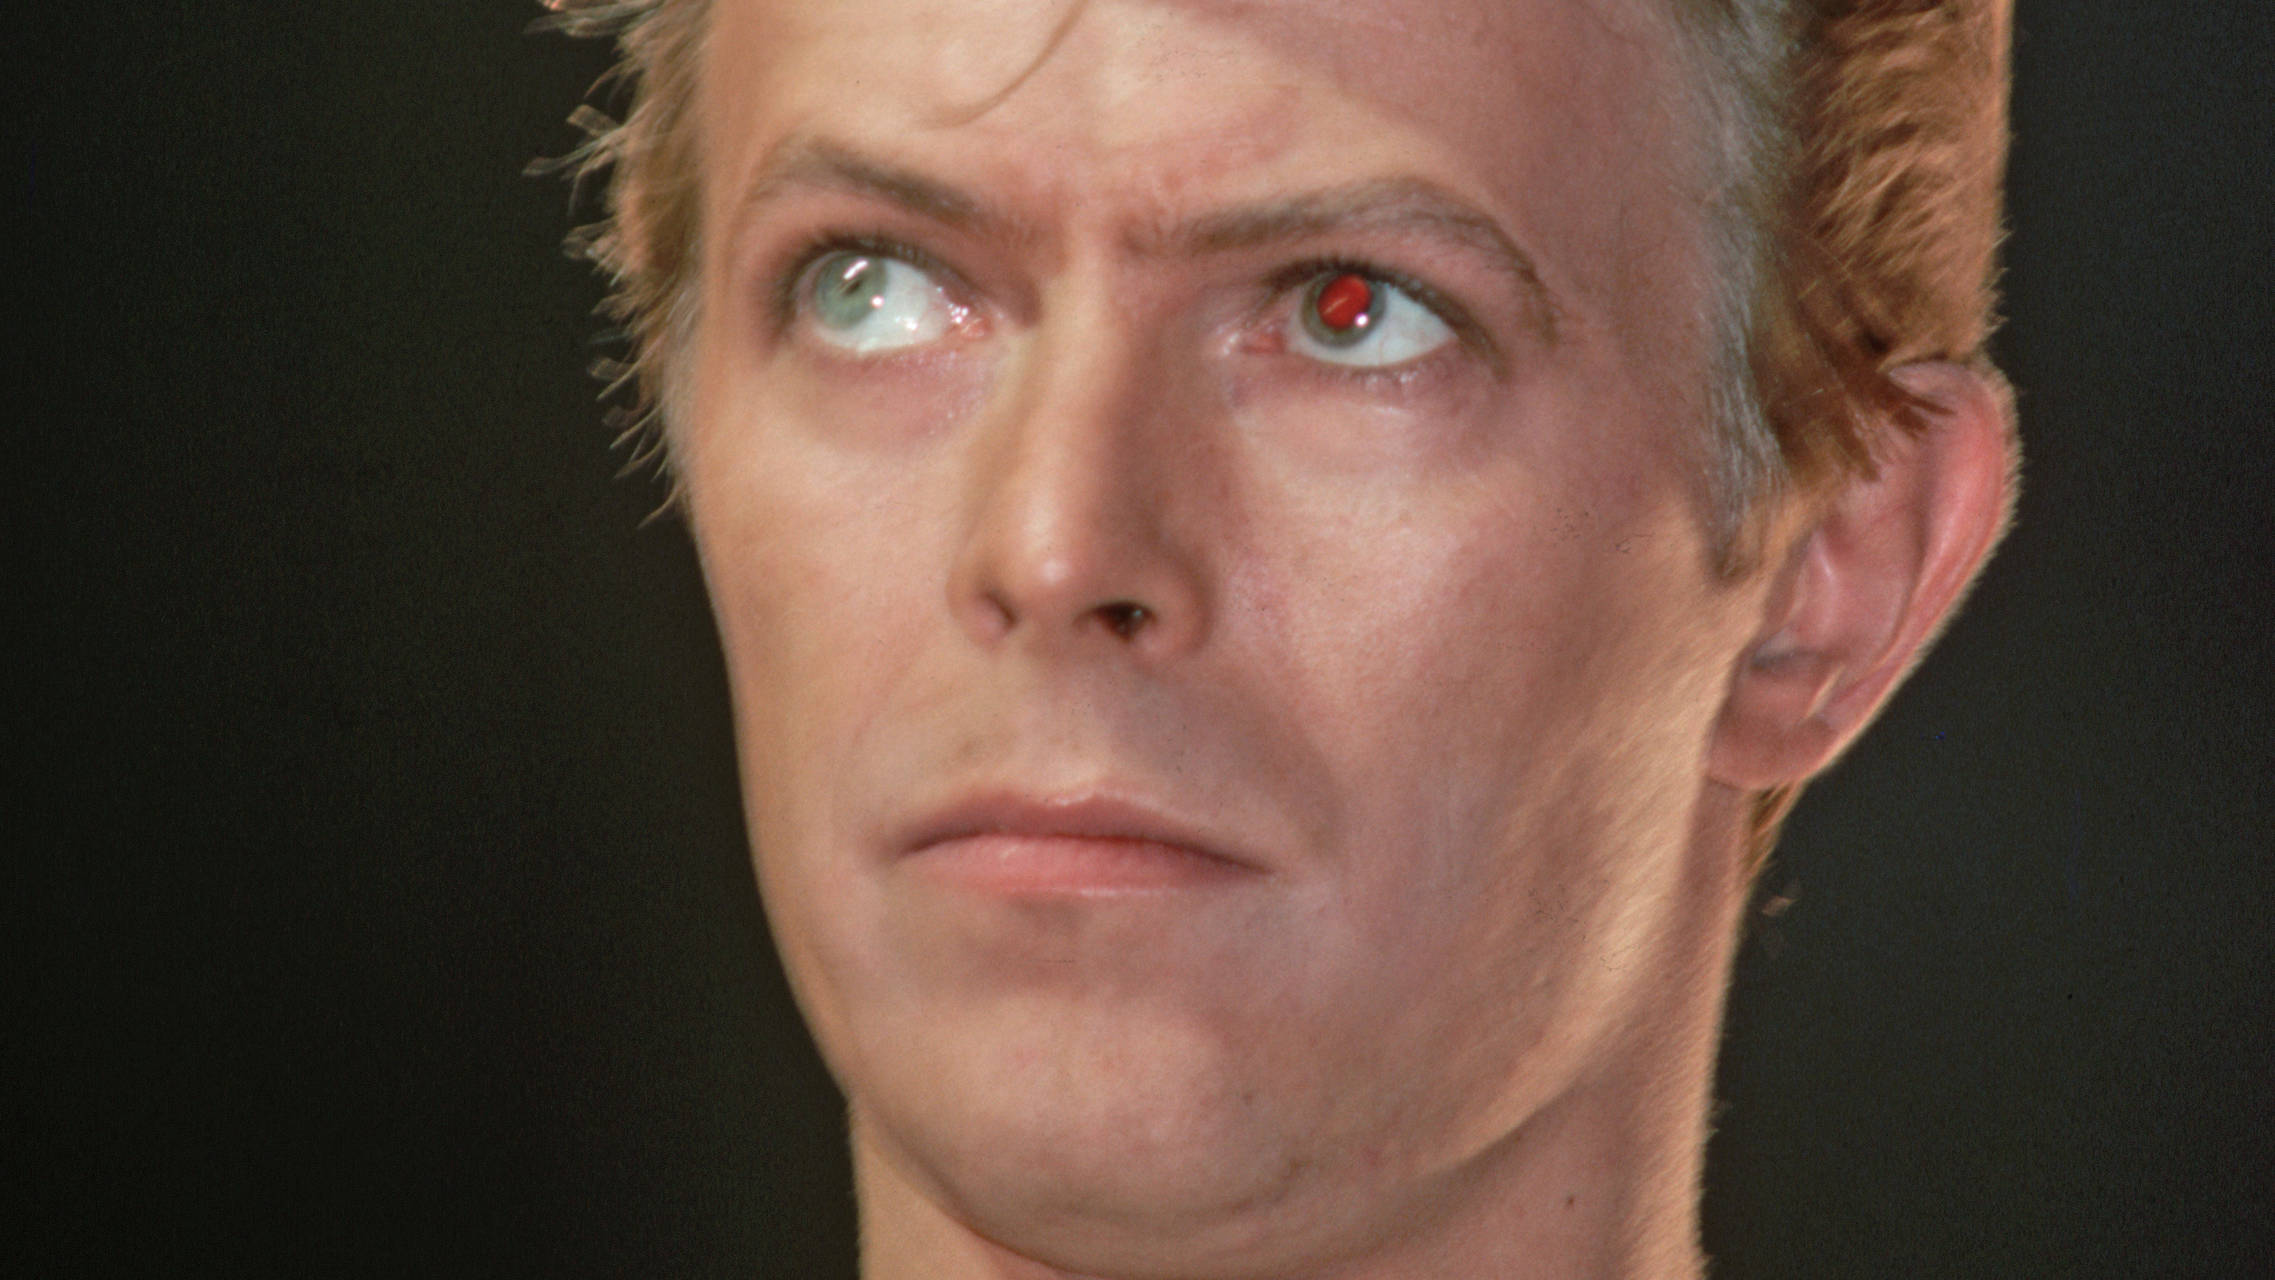 Did David Bowie really have different coloured eyes?